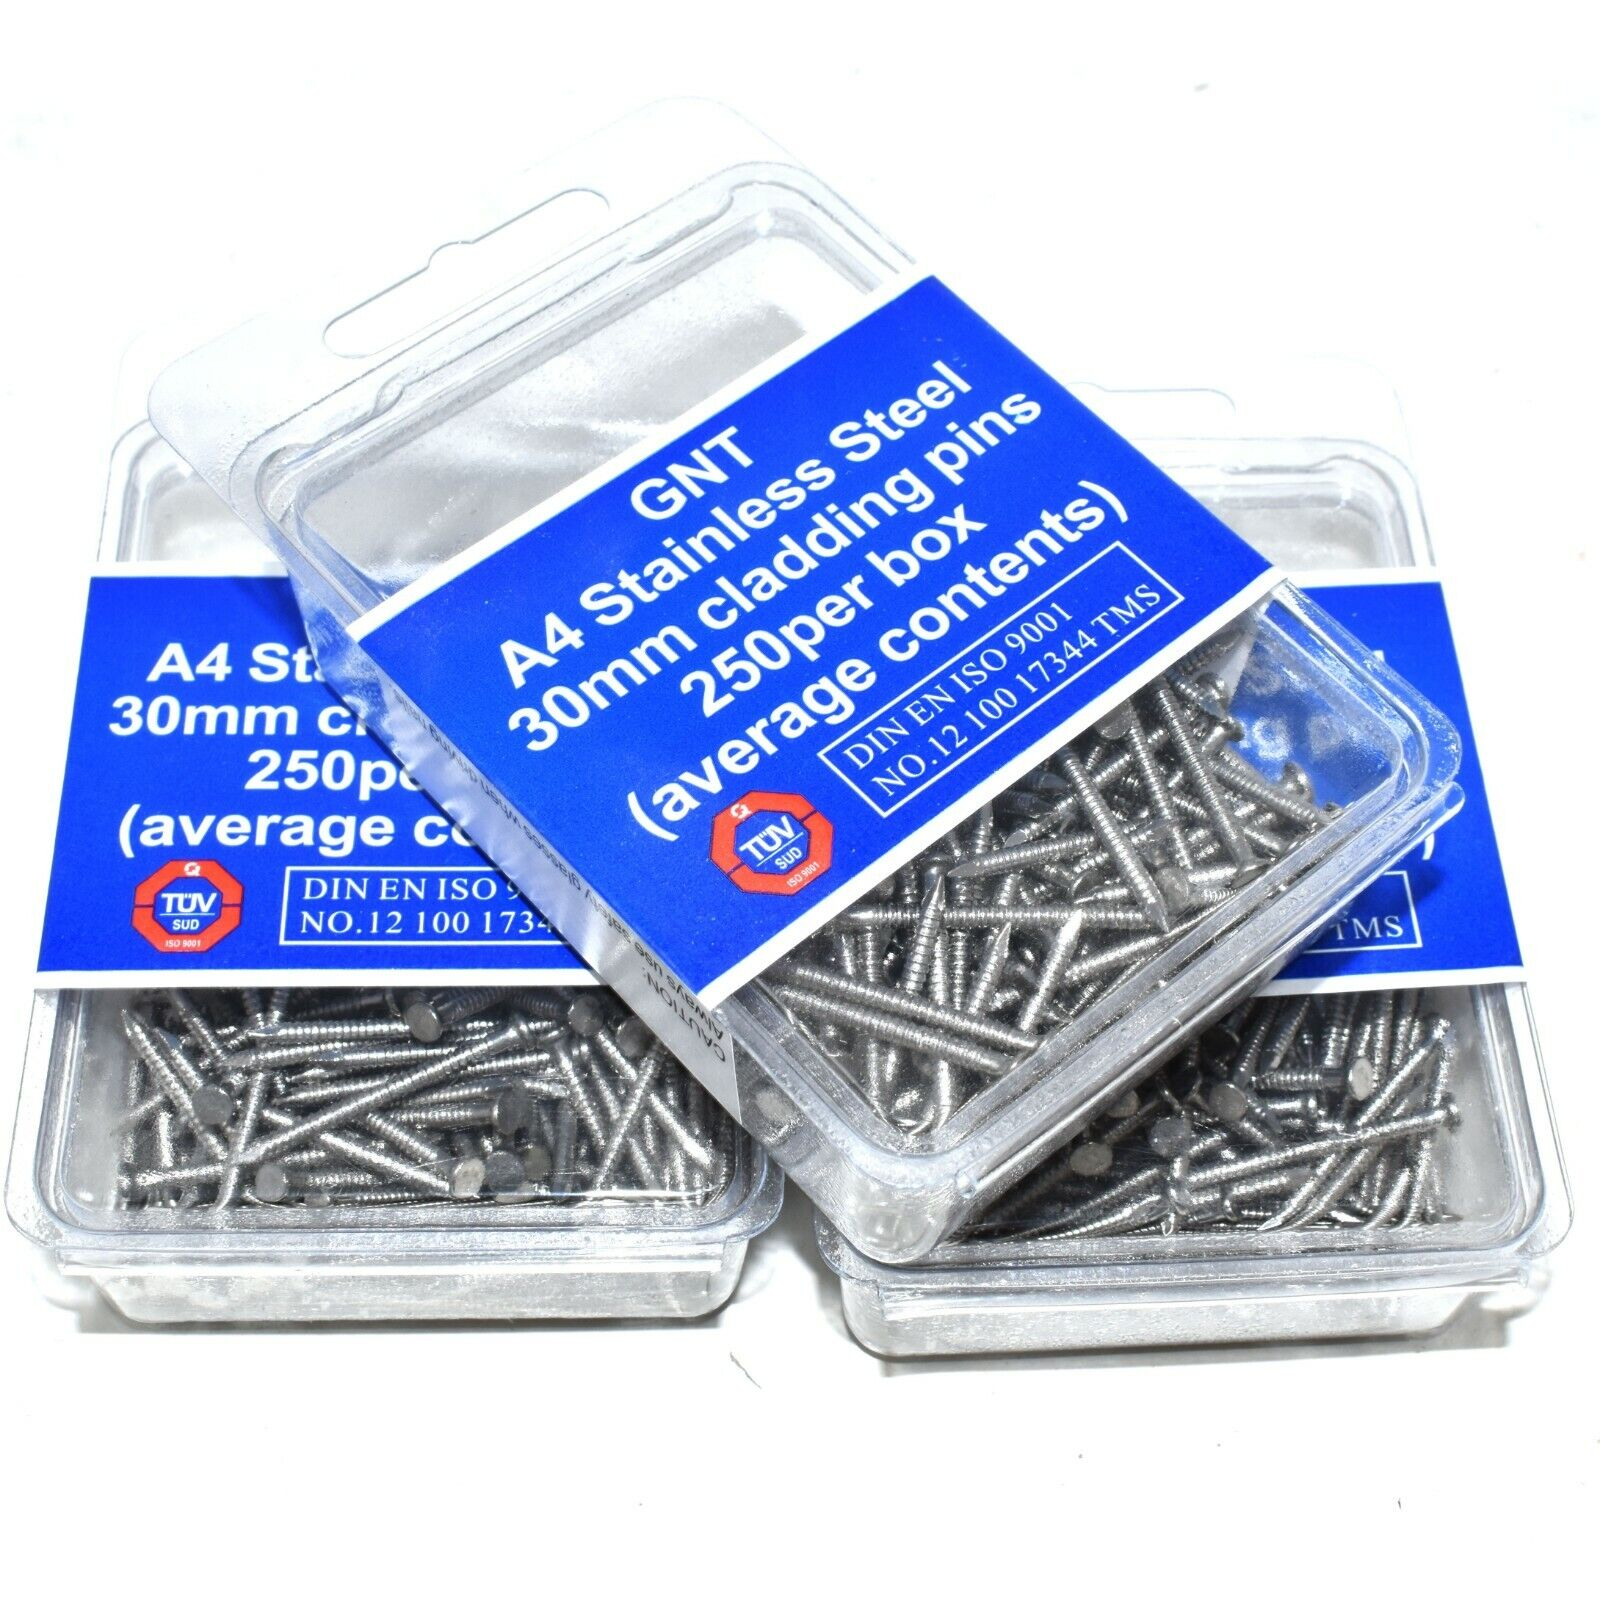 25mm BLACK POLYTOP STAINLESS STEEL PINS FASCIA BOARD POLYAMIDE * PACK OF 25